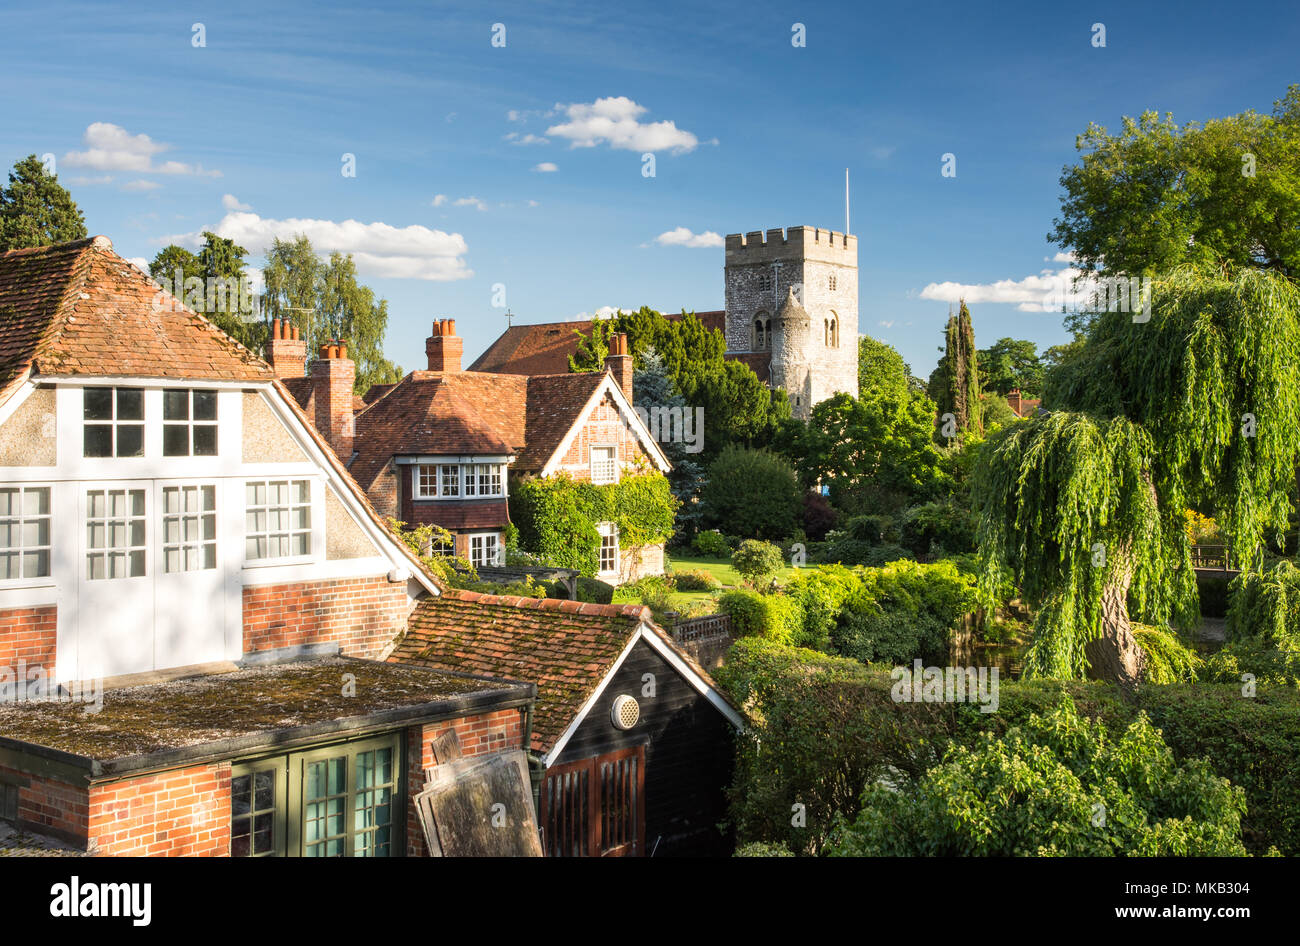 Reading, England, UK - August 29, 2016: Traditional cottages and parish church beside the River Thames in the village of Goring, Berkshire. - Stock Image